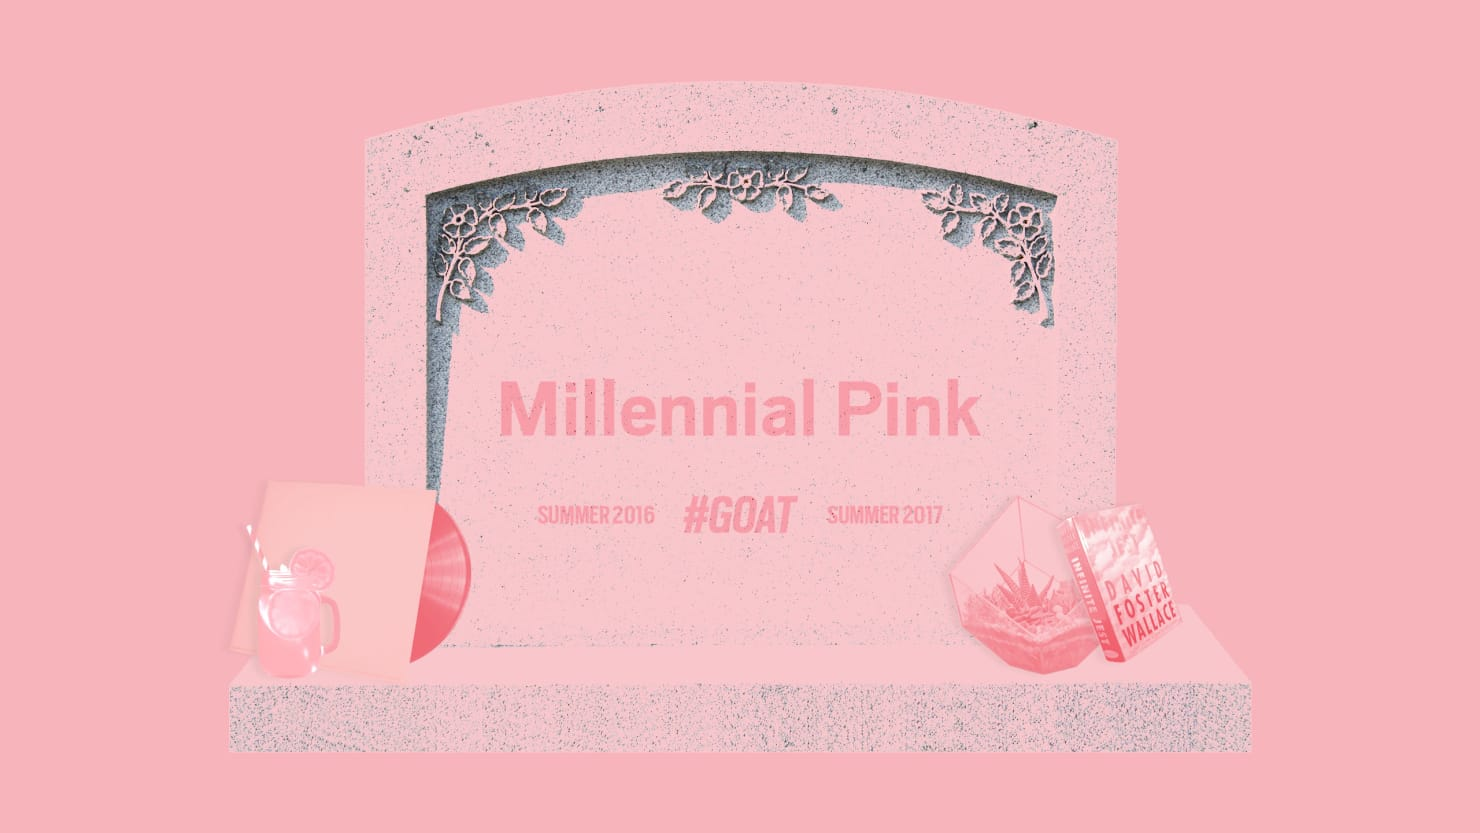 Desktop Wallpaper Quotes Love Millennial Pink Has Lost Its Cool Prepare For The